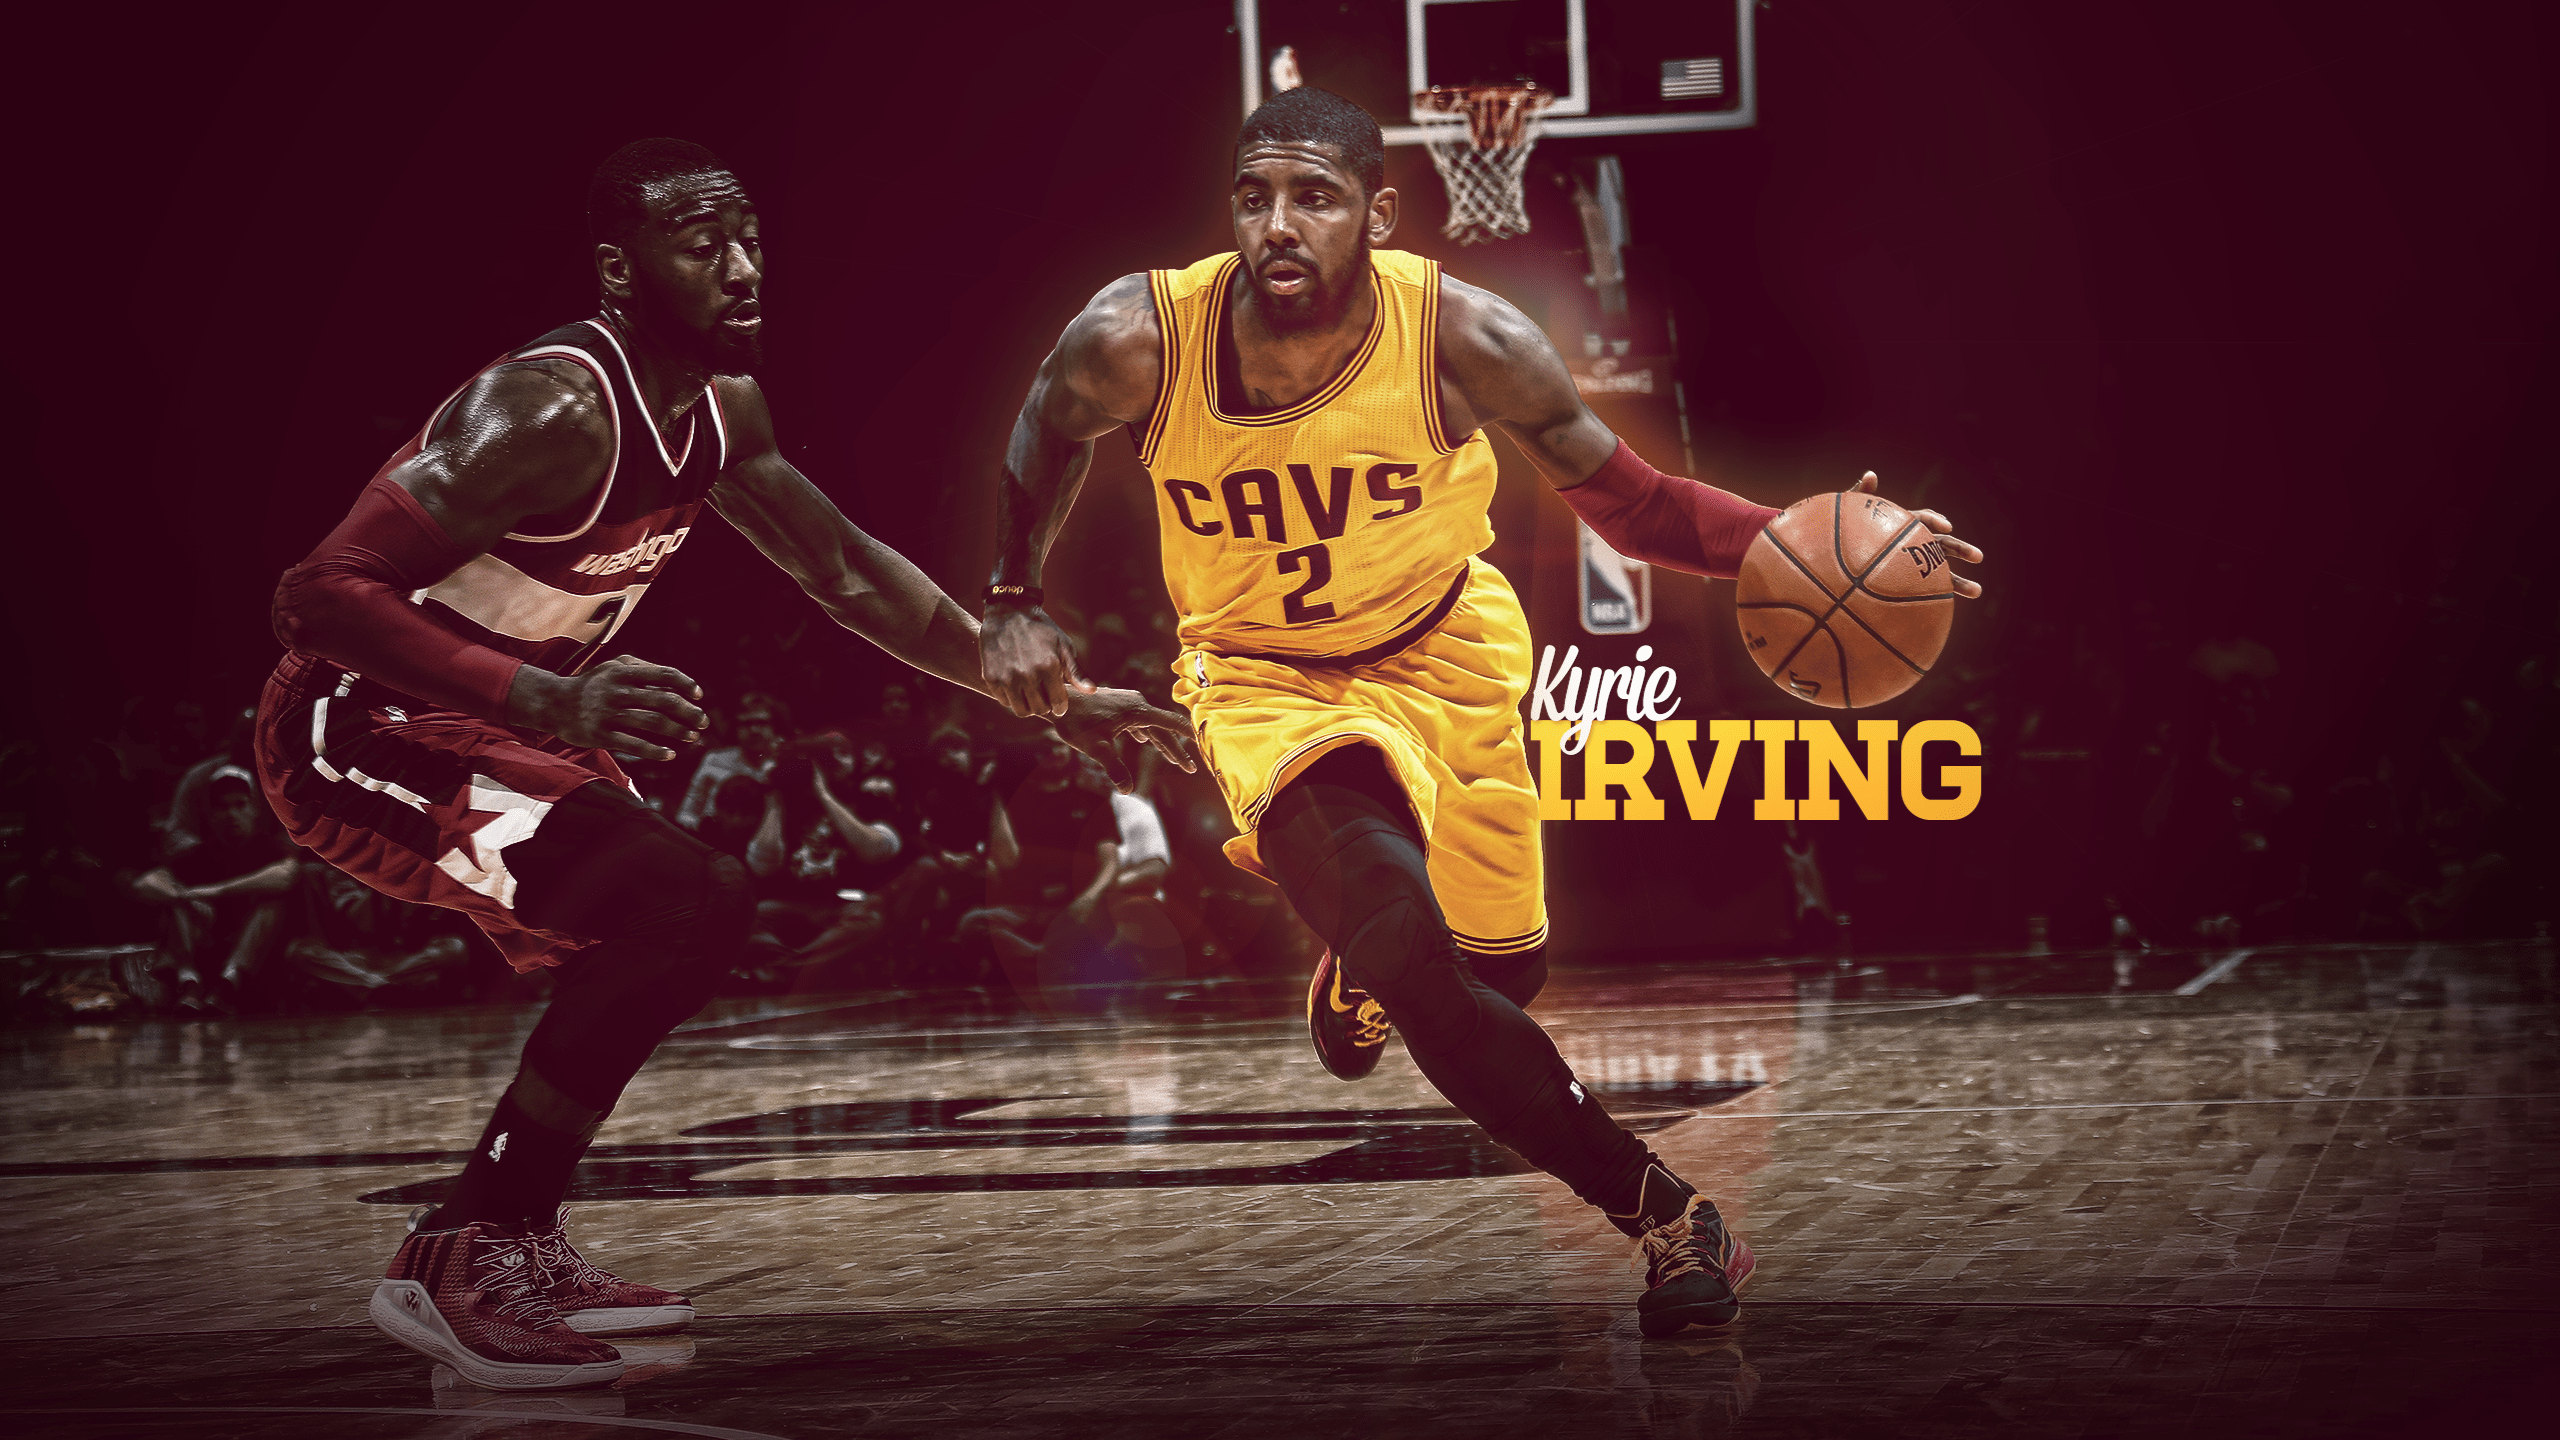 Kyrie irving android wallpaper hd